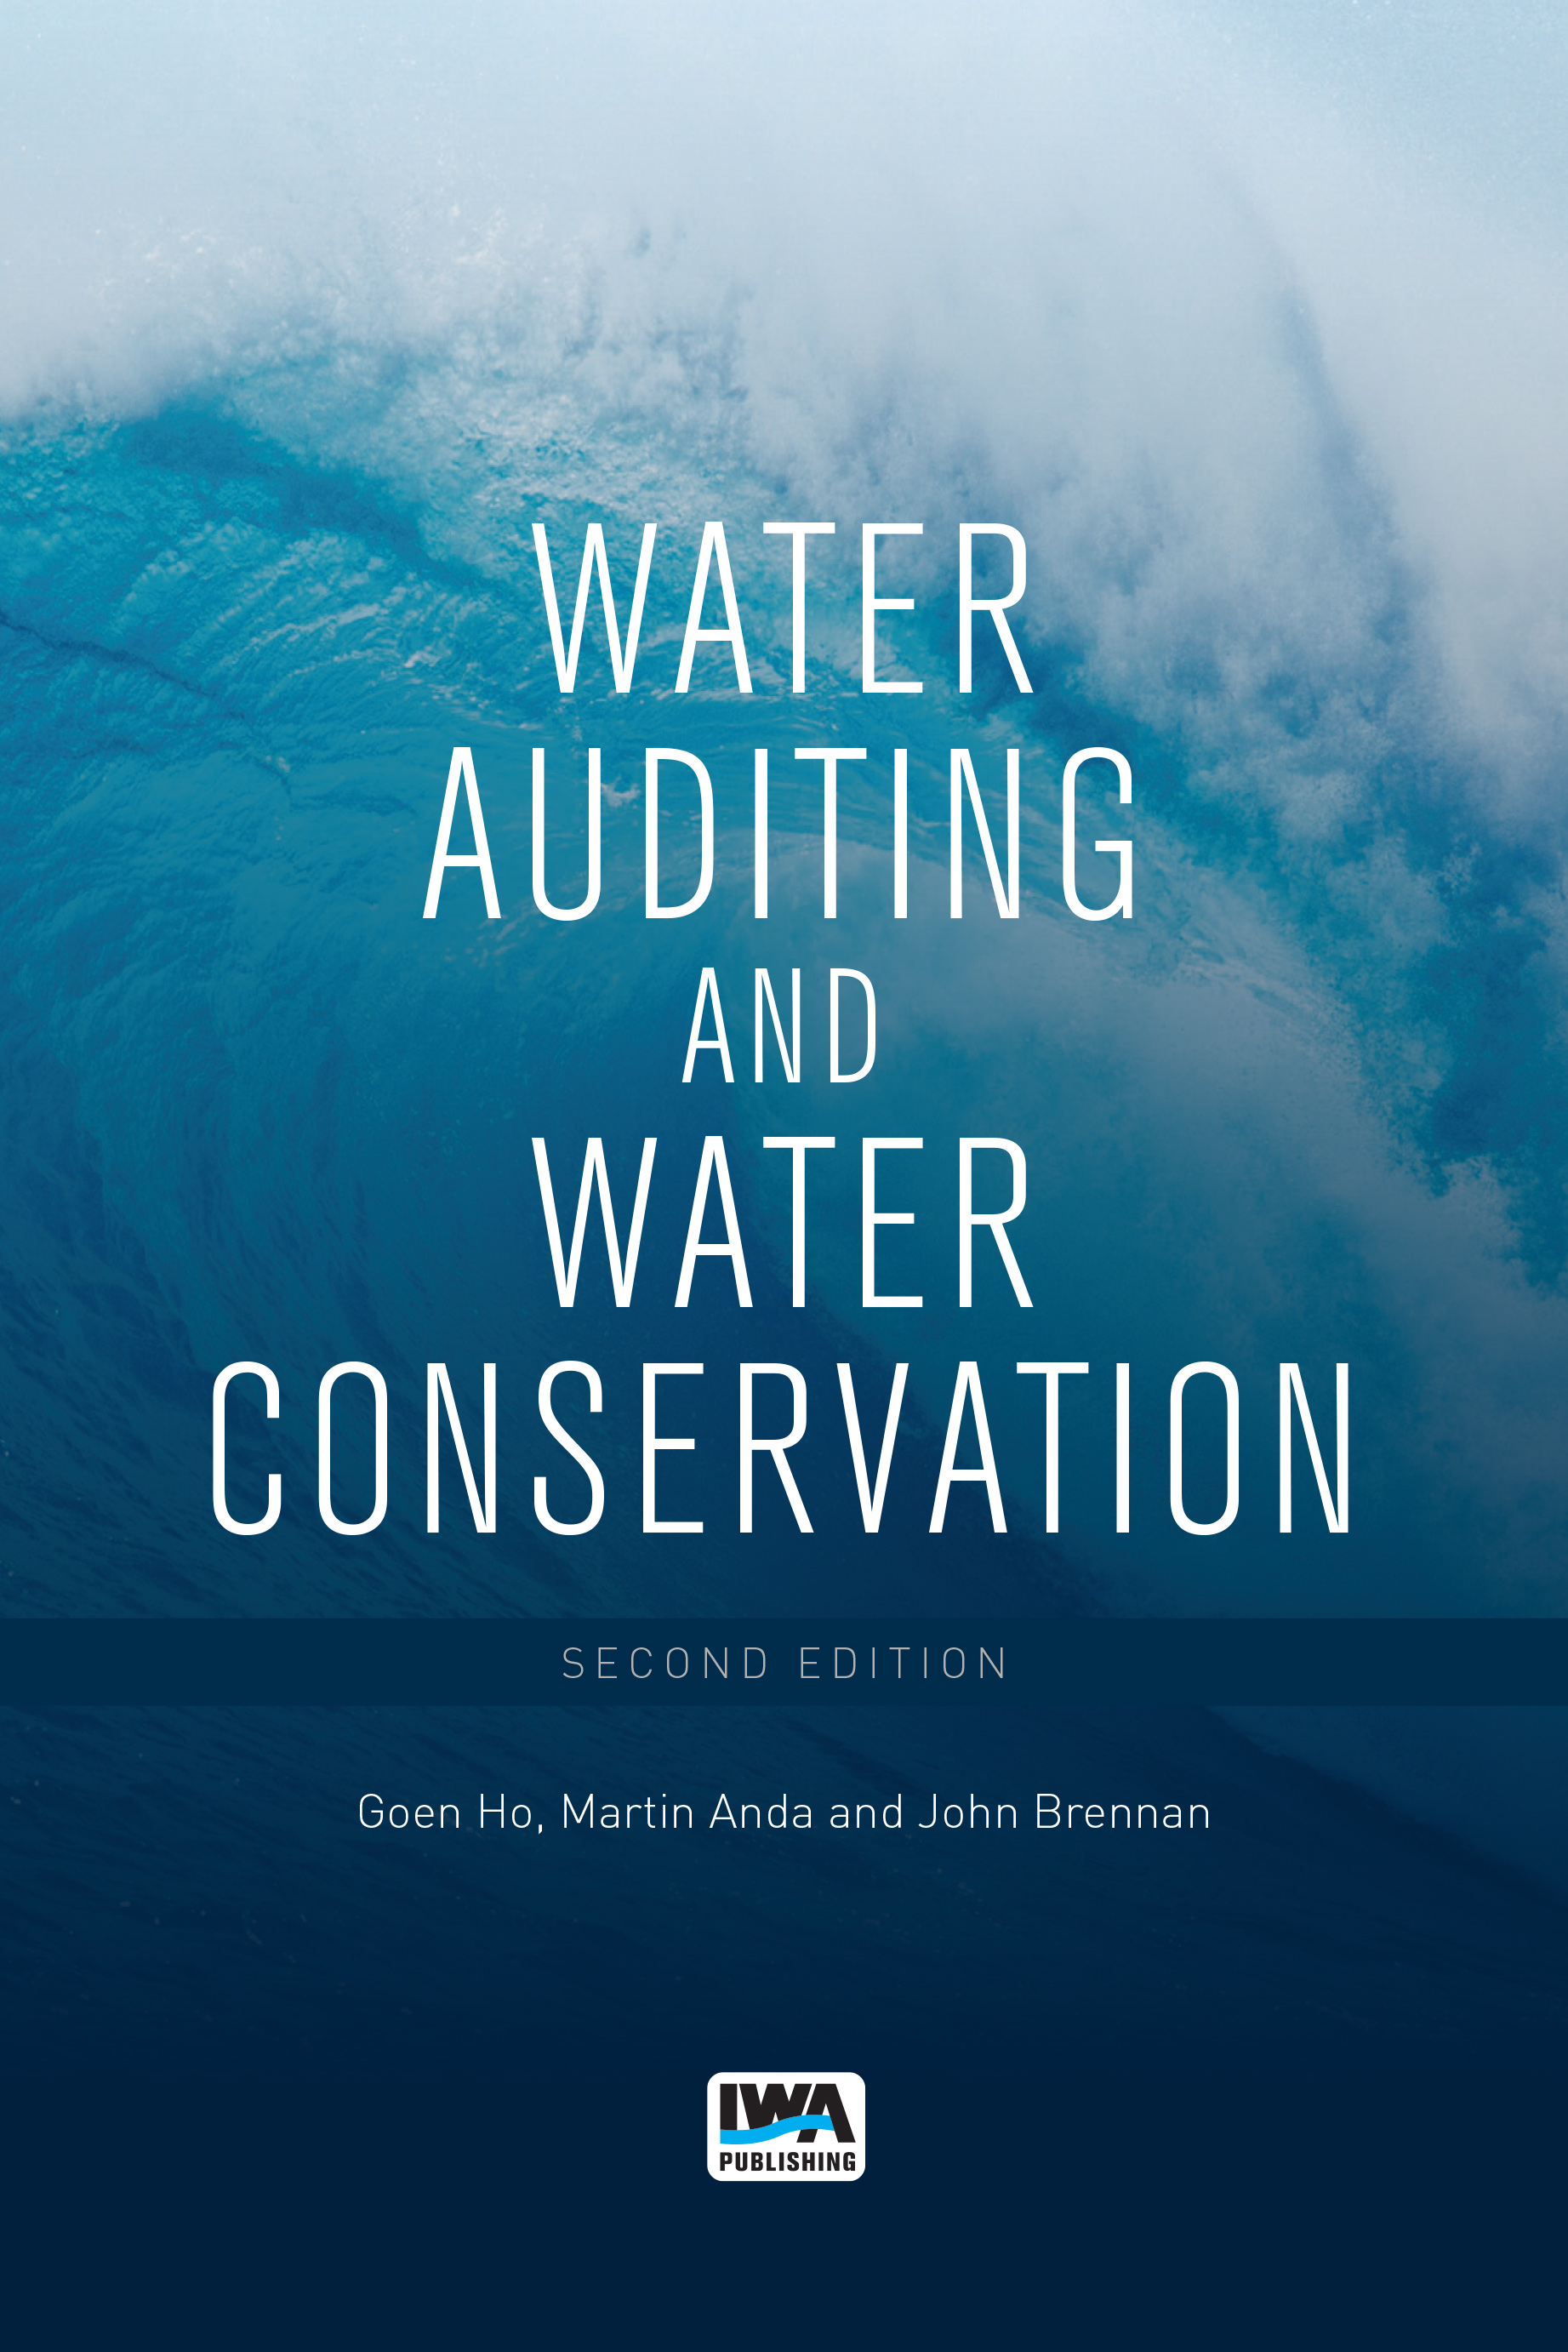 Water Auditing and Water Conservation, 2nd Edition